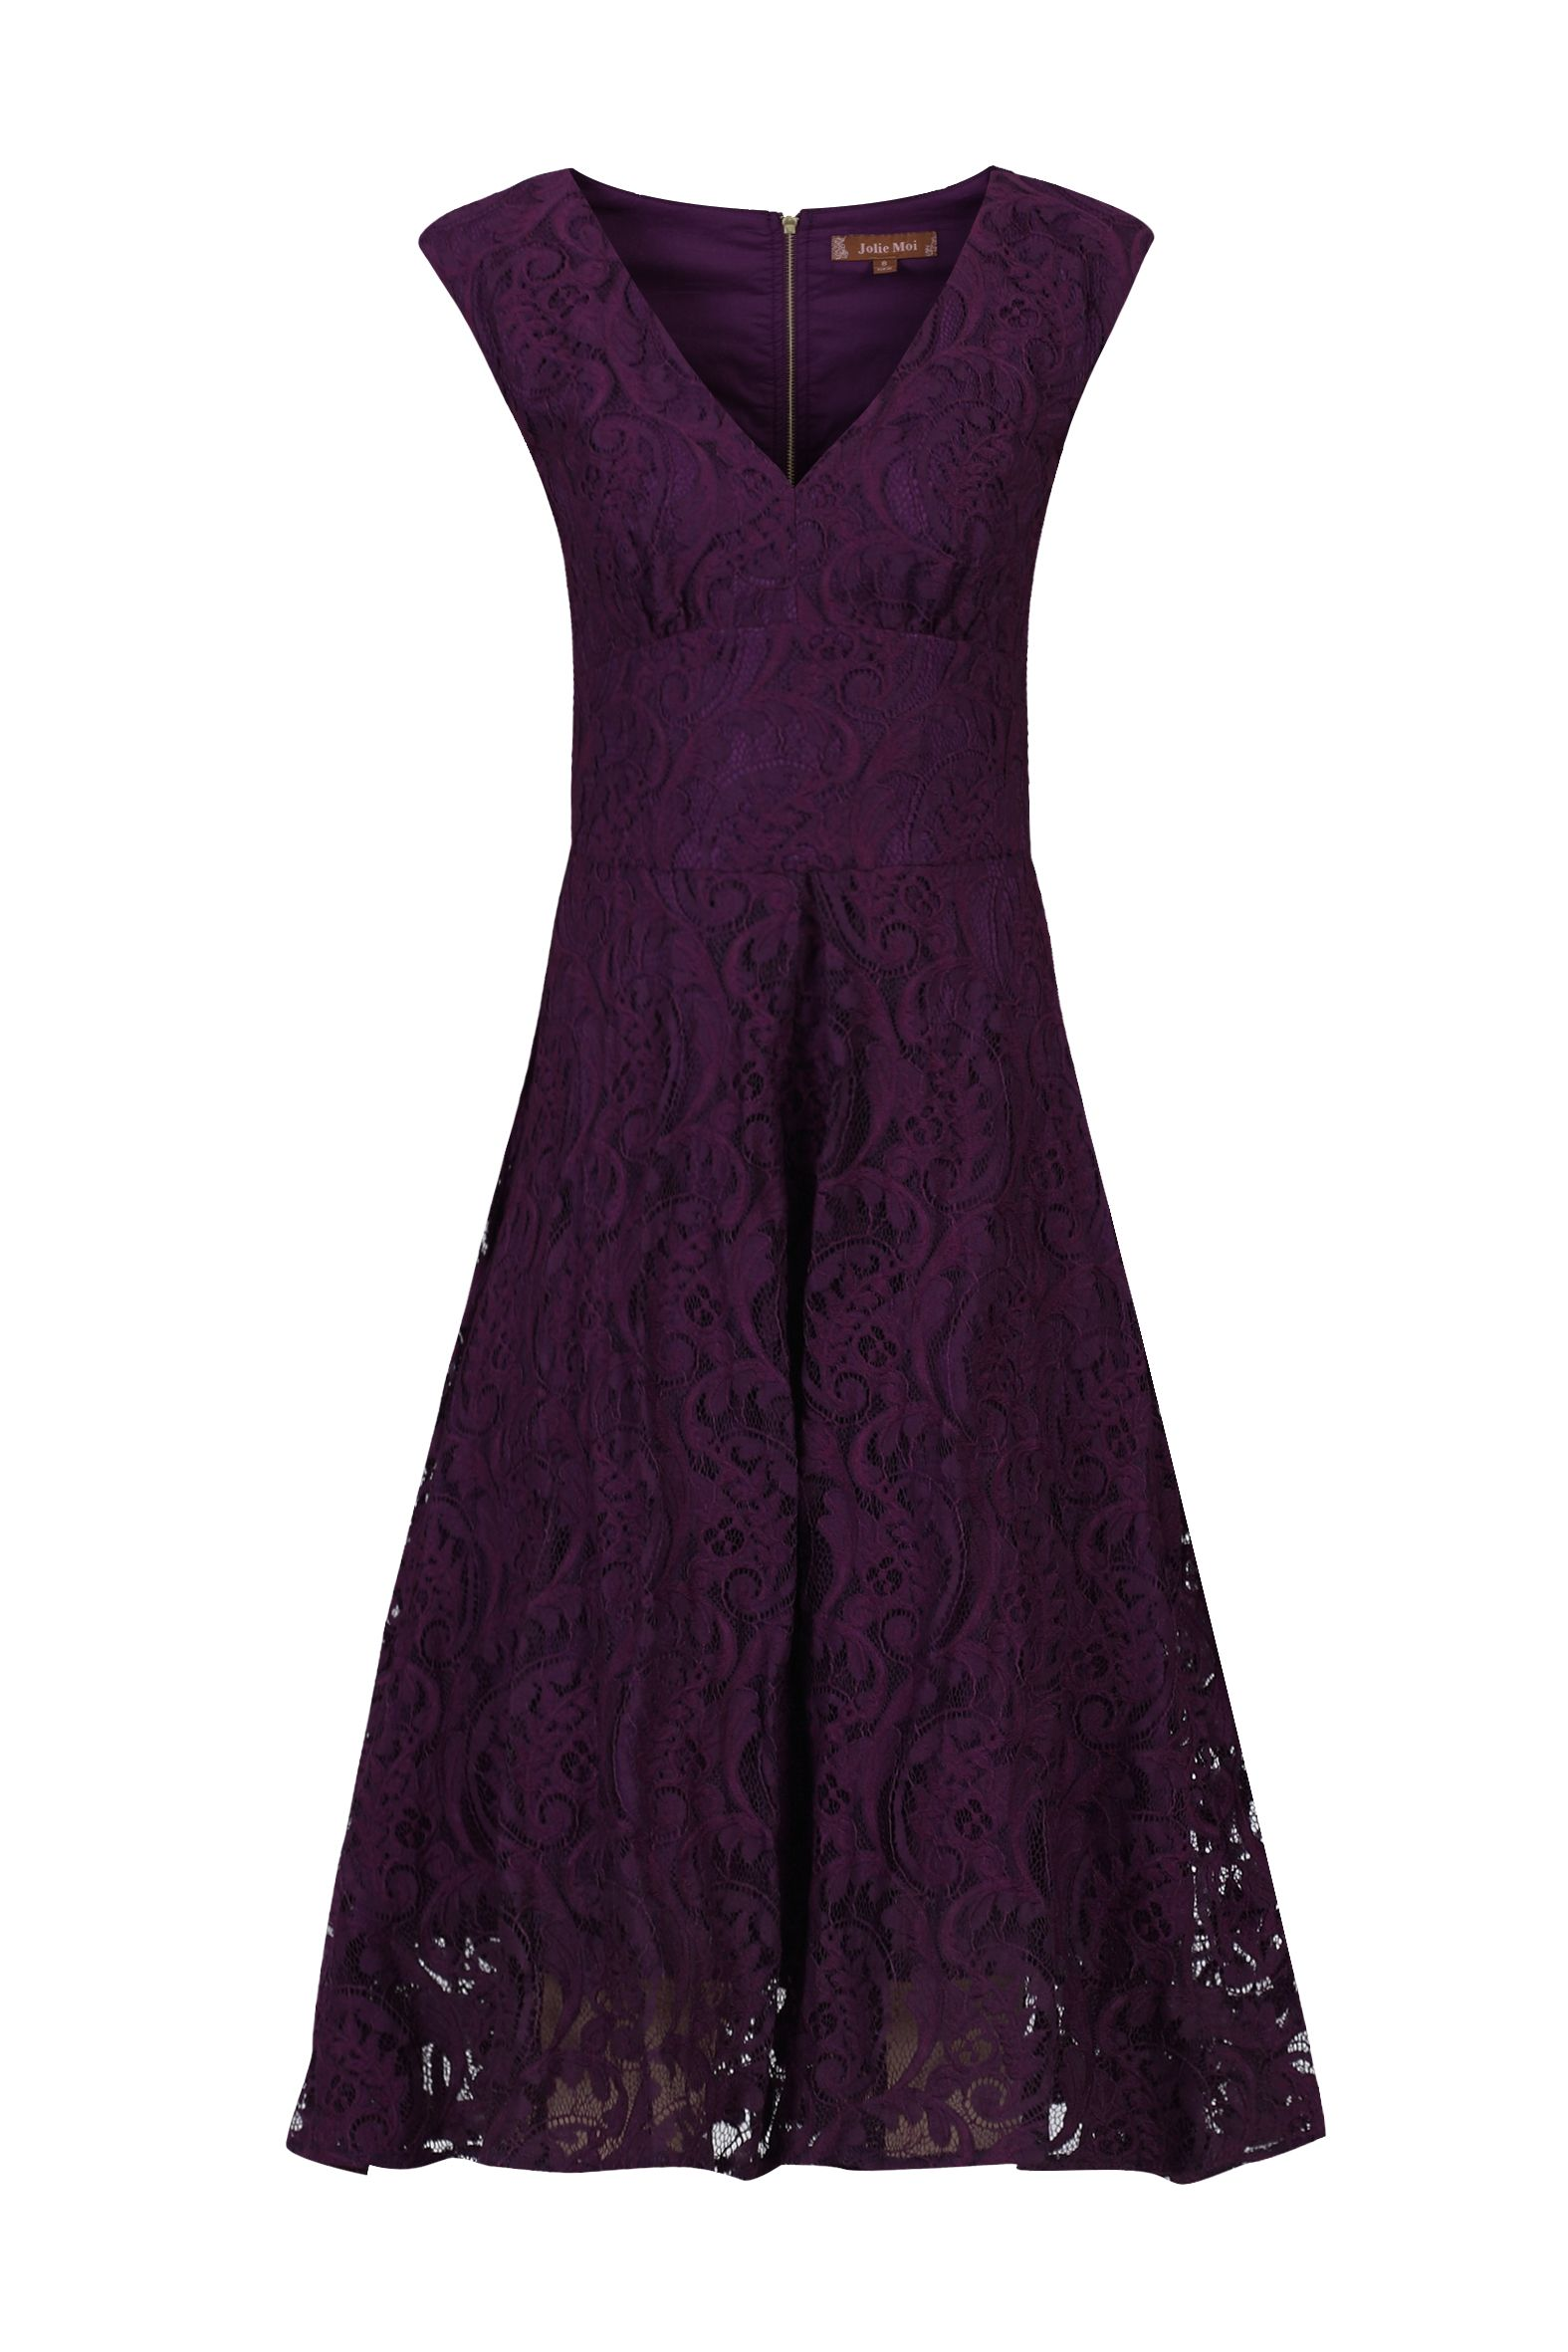 Jolie Moi Sweetheart Neckline 50s Lace Dress, Dark Purple